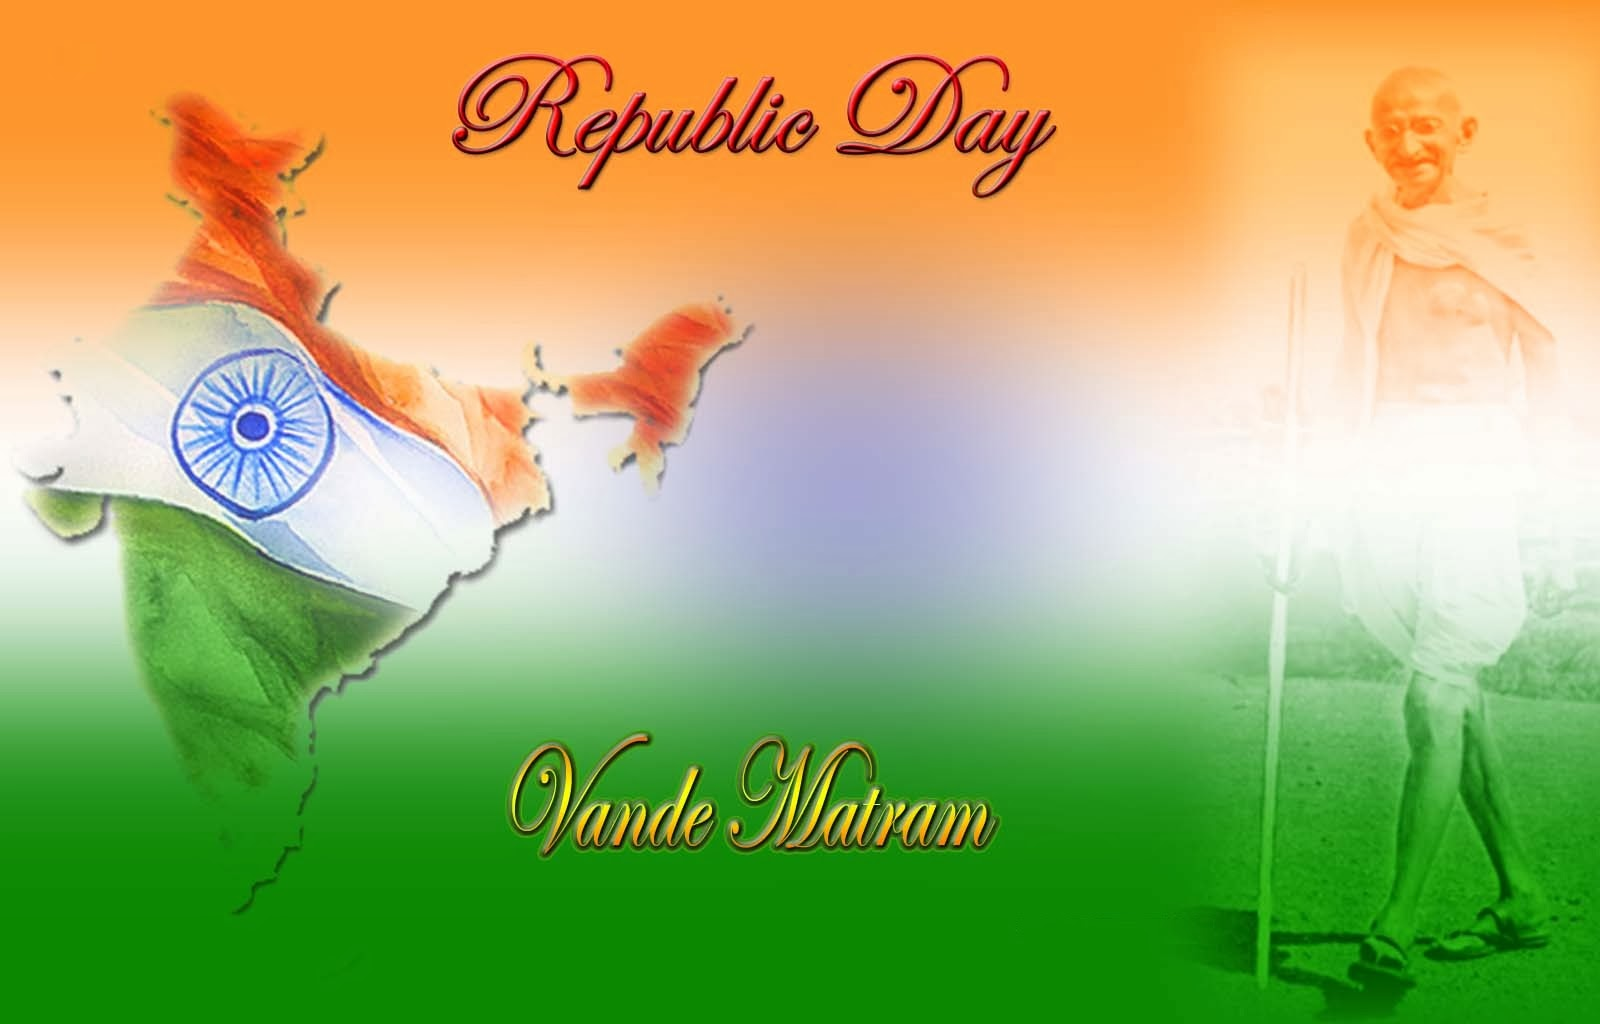 Best Of Republic Day 2020 Wishing Images Poems And Texts Northbridge Times